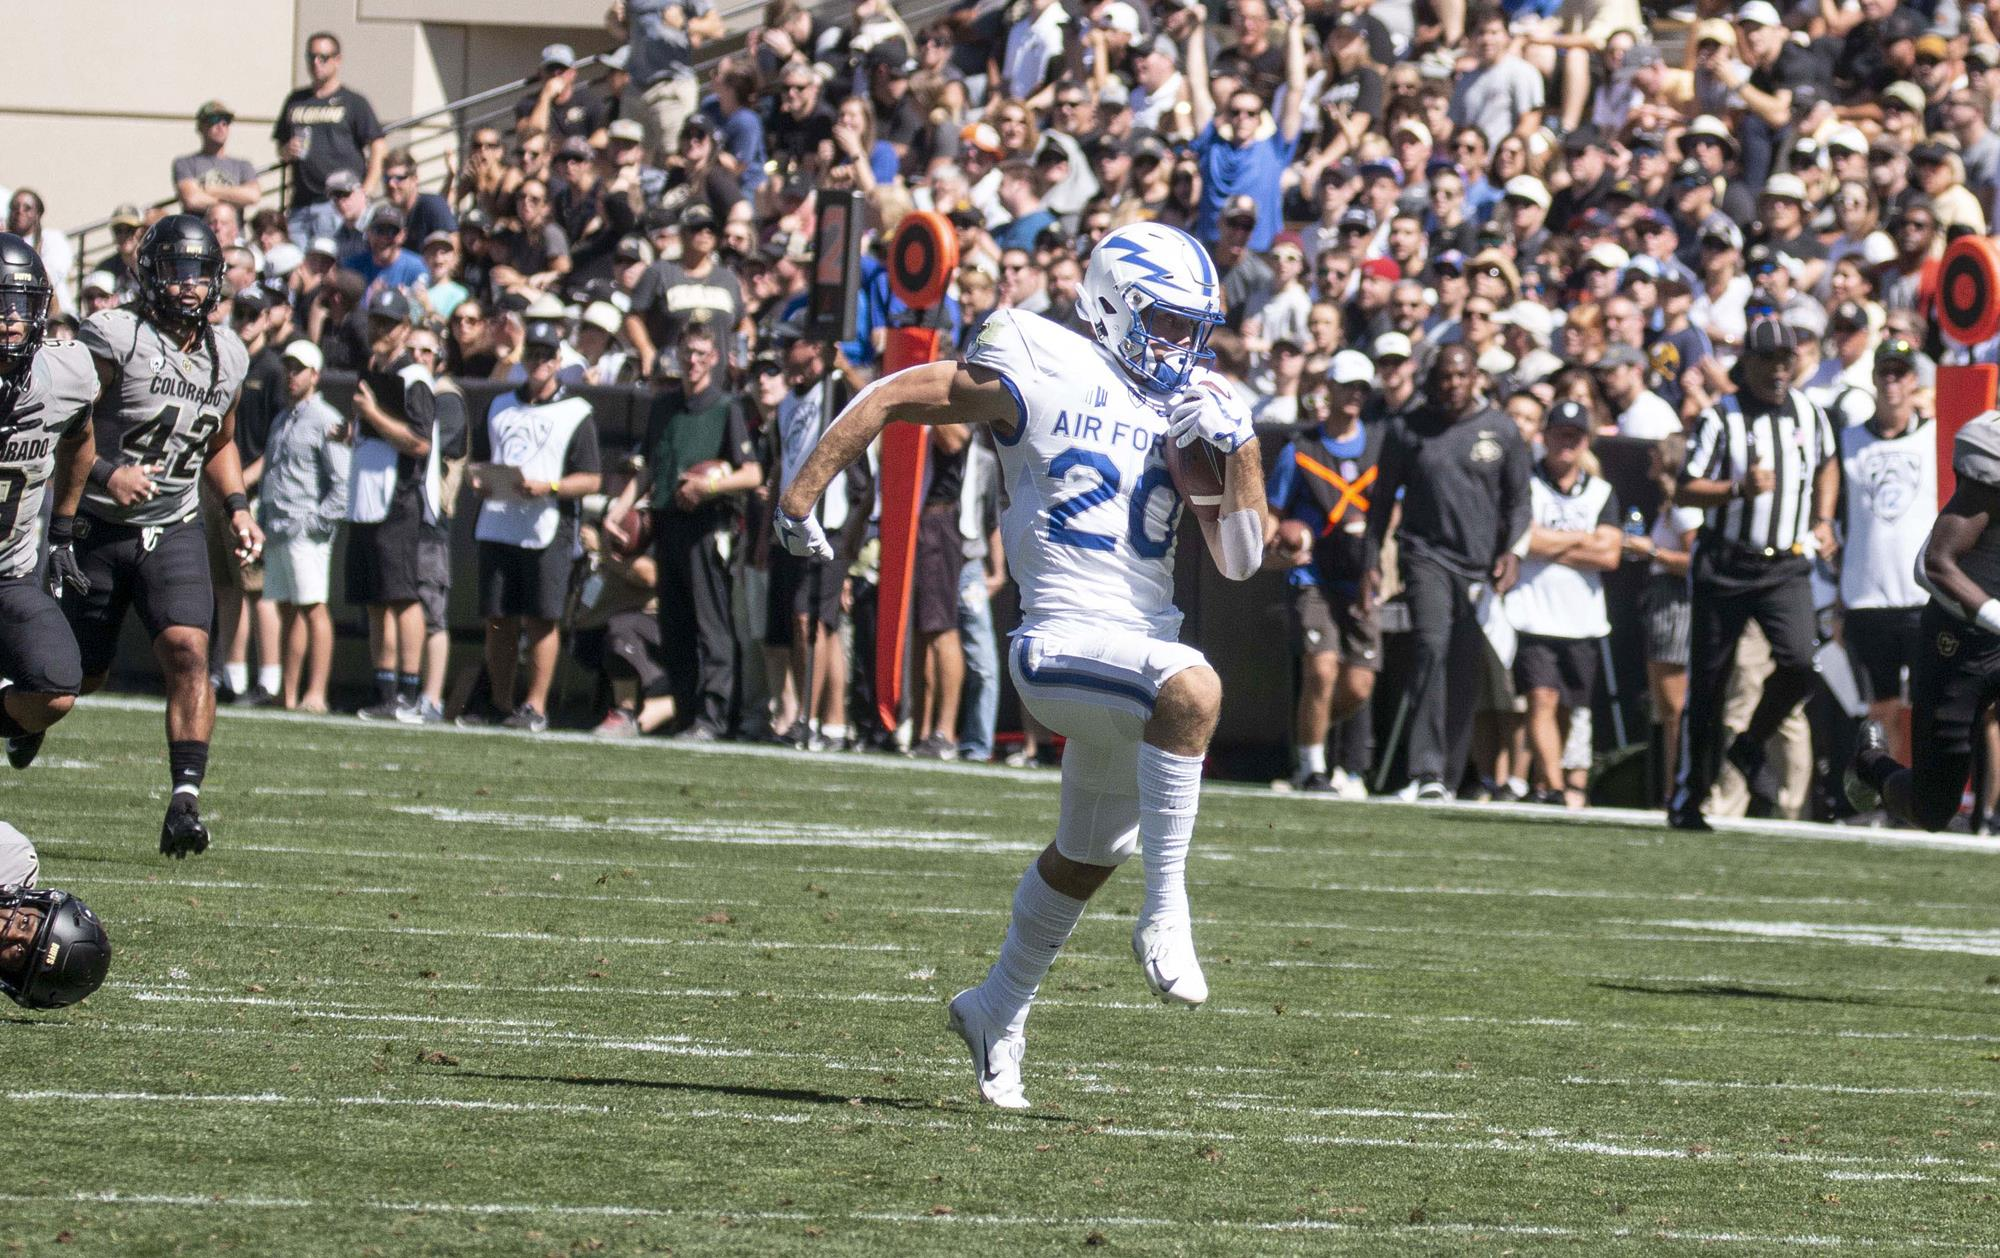 Air Force is flying high with deep ball passes